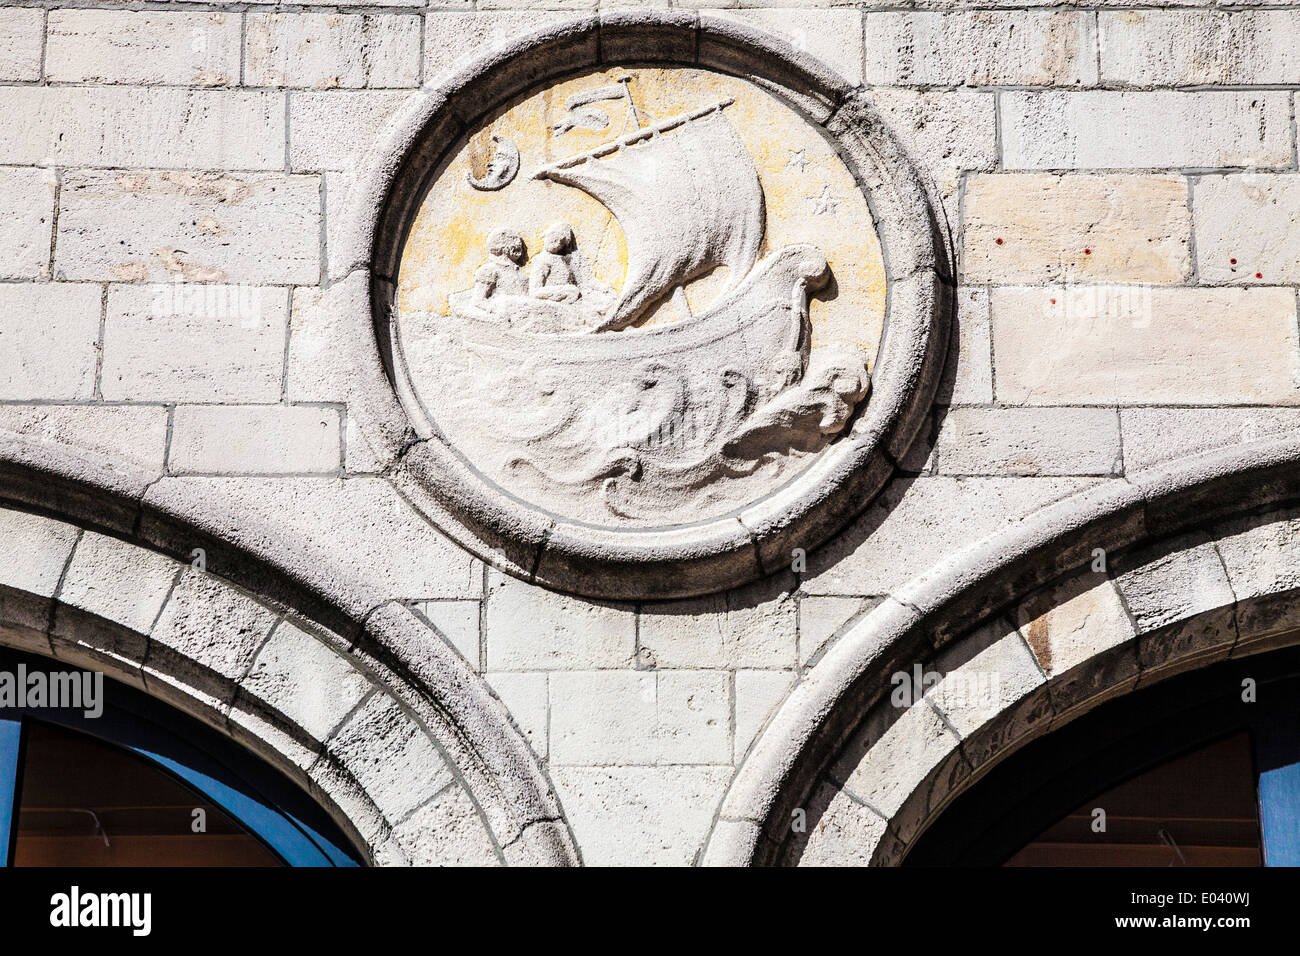 Stone carving of an old sailing boat on a wall in Antwerp, Belgium. - Stock Image